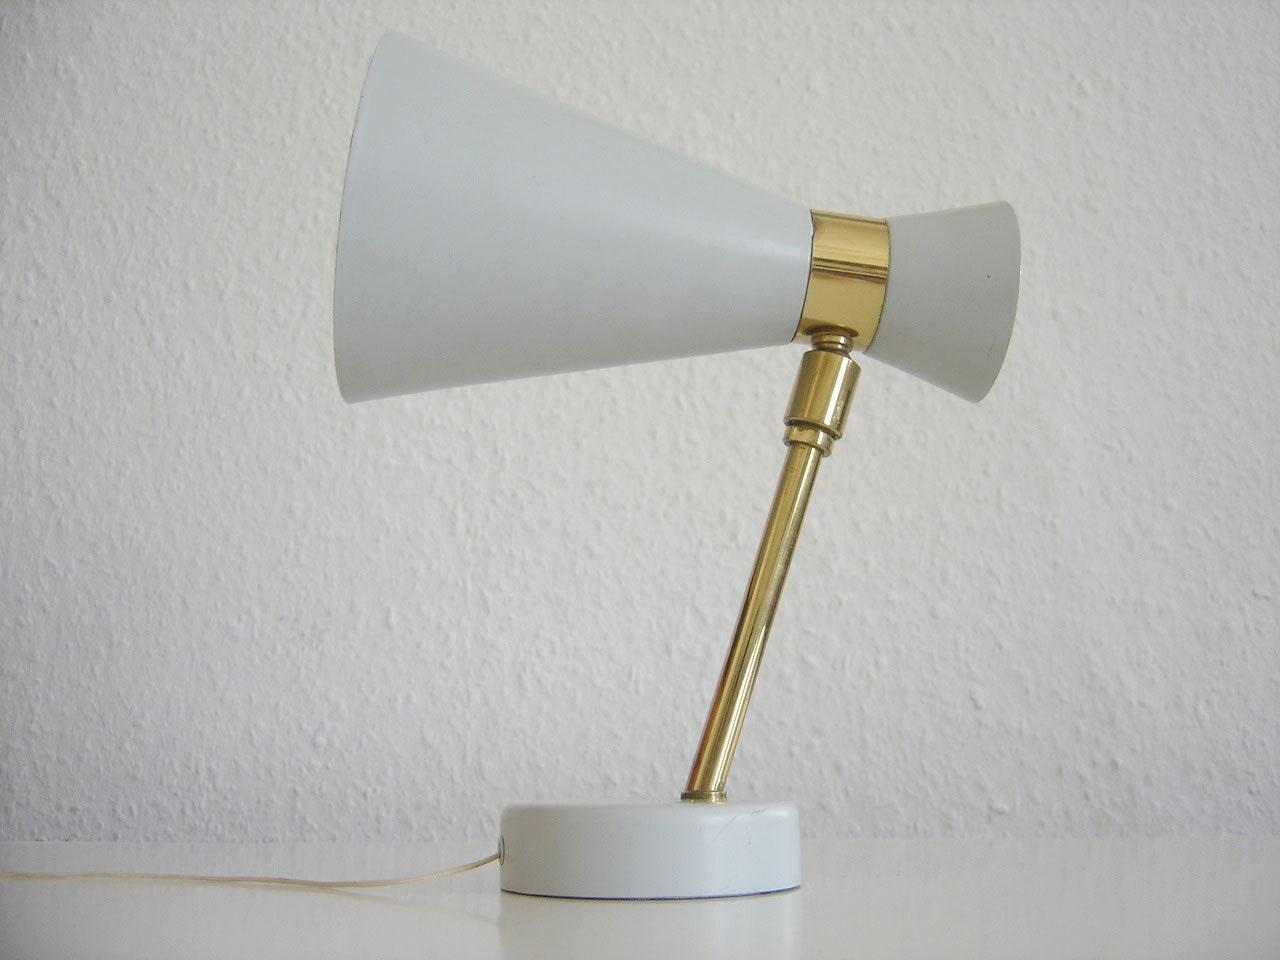 Wall Sconces Mid Century Modern : Mid Century Modern Diabolo Wall Light Sconce lamp Arteluce